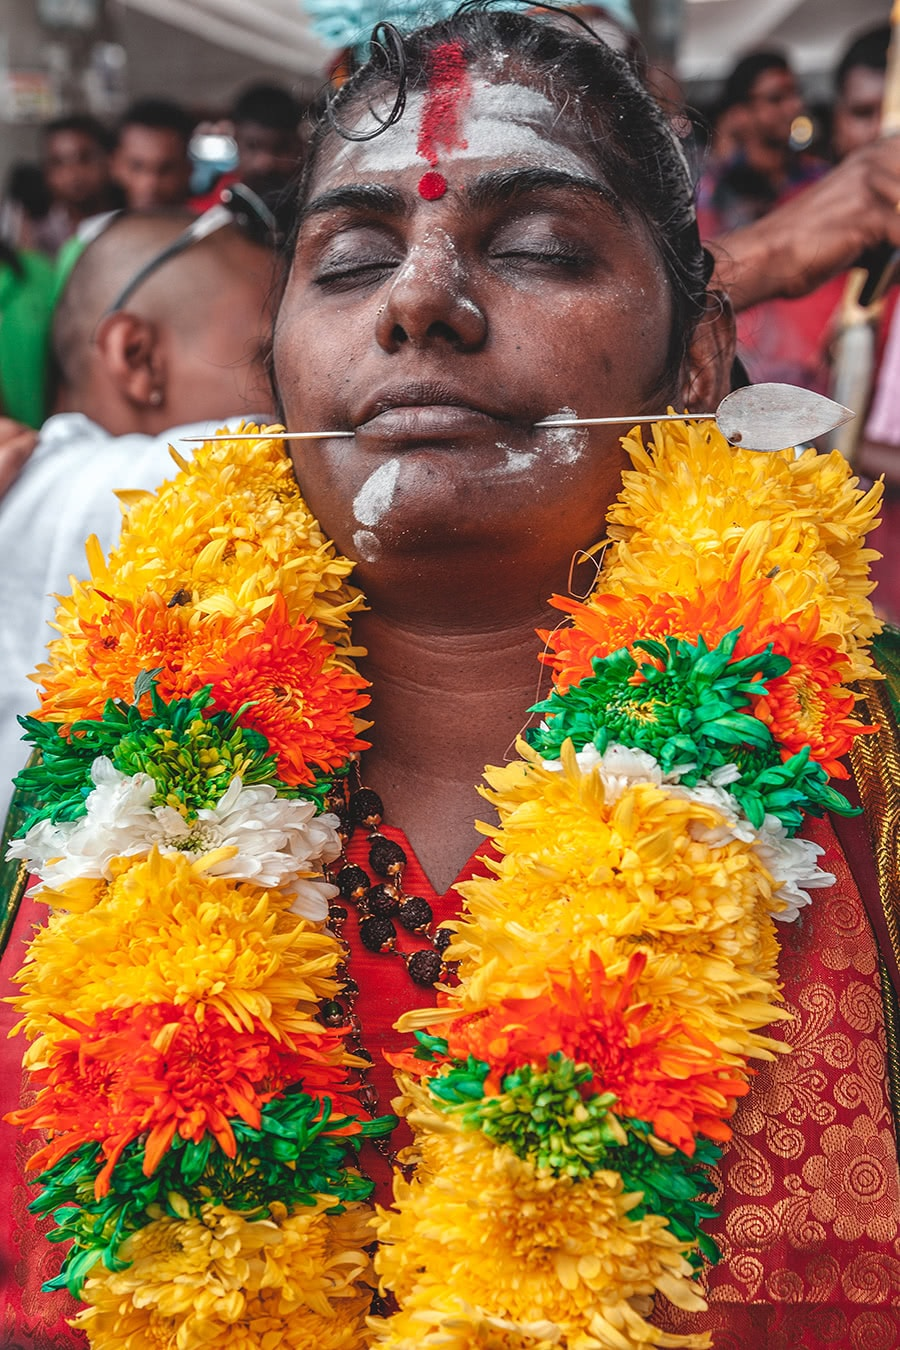 Devotee at the Thaipusam festival in Kuala Lumpur, Malaysia.